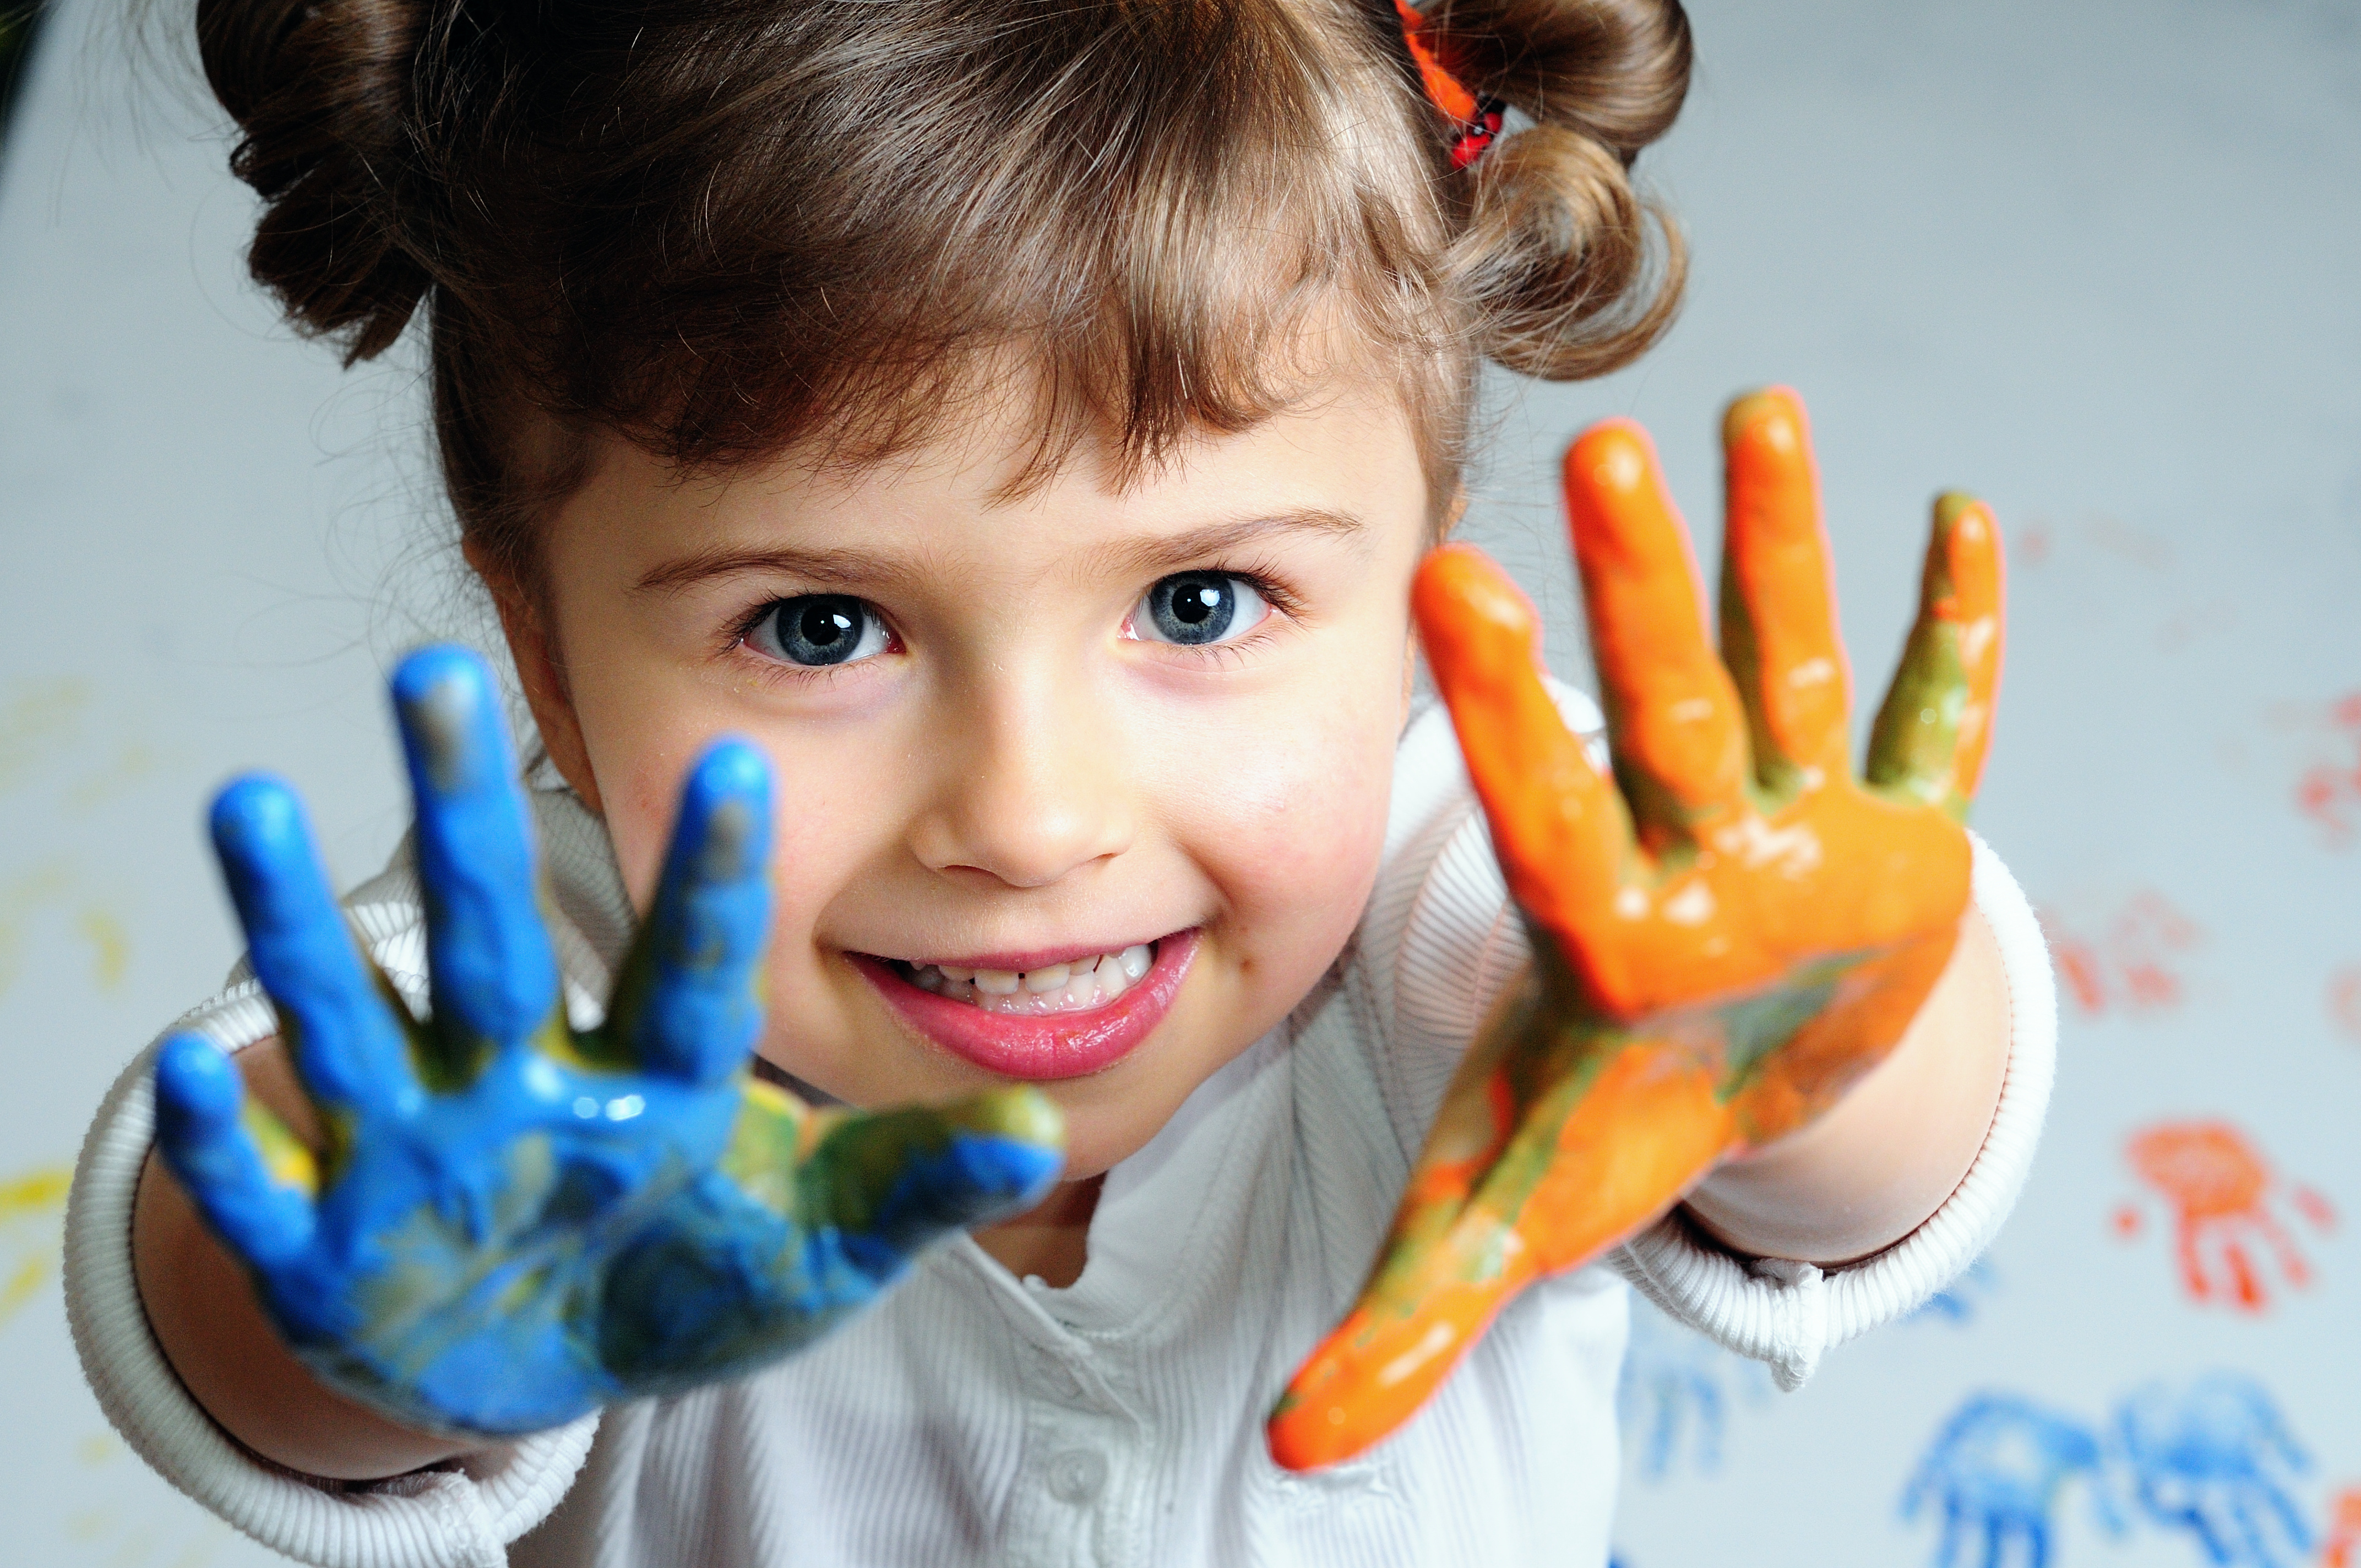 A Child Painting with Hands 7780.57 Kb